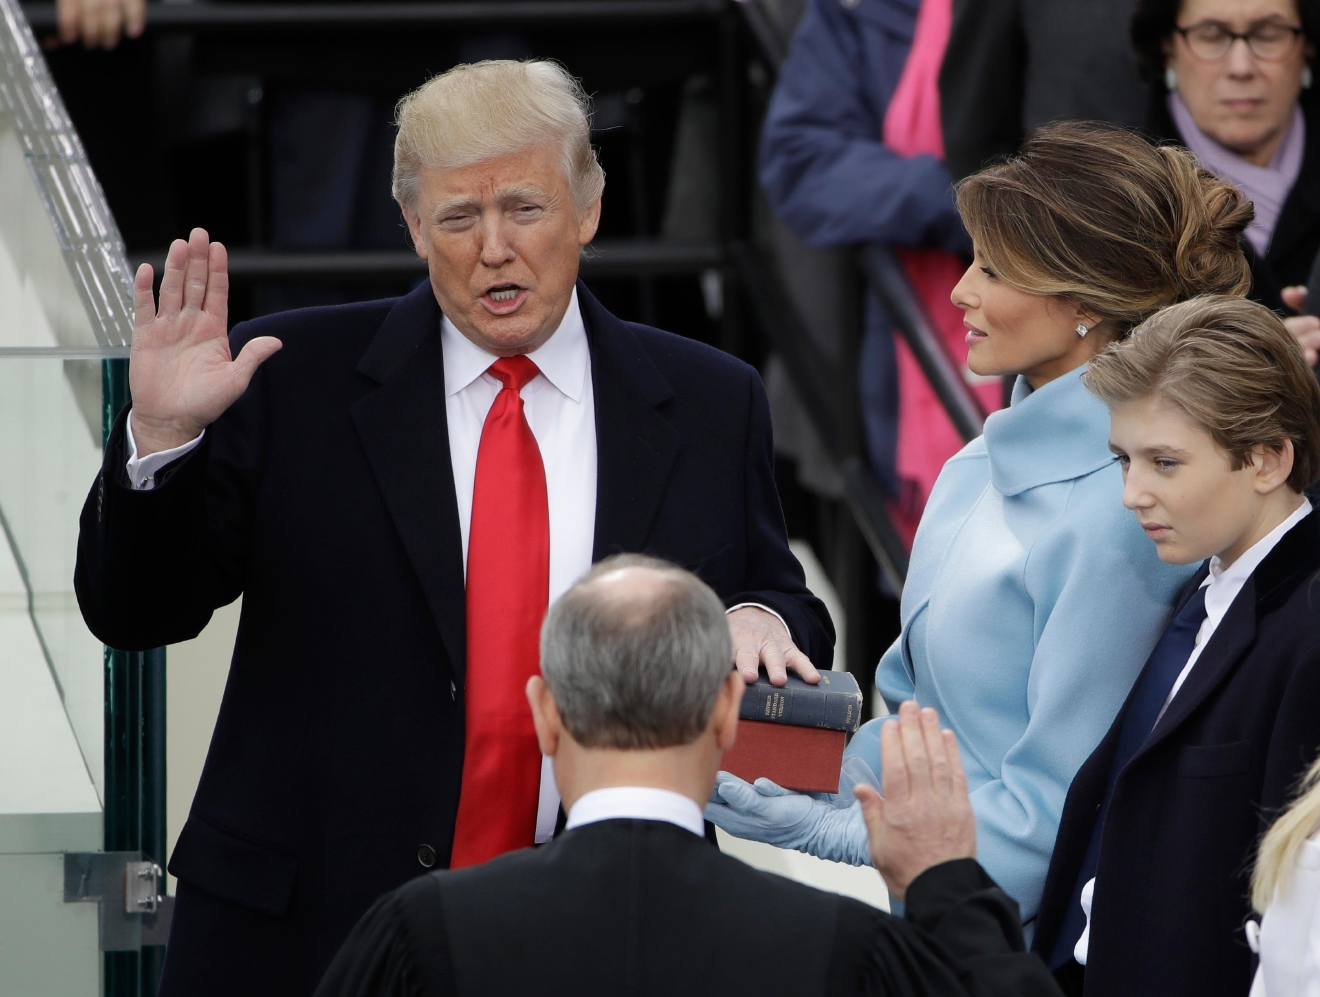 Donald Trump is sworn in as the 45th president of the United States by Chief Justice John Roberts as Melania Trump looks on during the 58th Presidential Inauguration at the U.S. Capitol in Washington, Friday, Jan. 20, 2017. (AP Photo/Matt Rourke) '